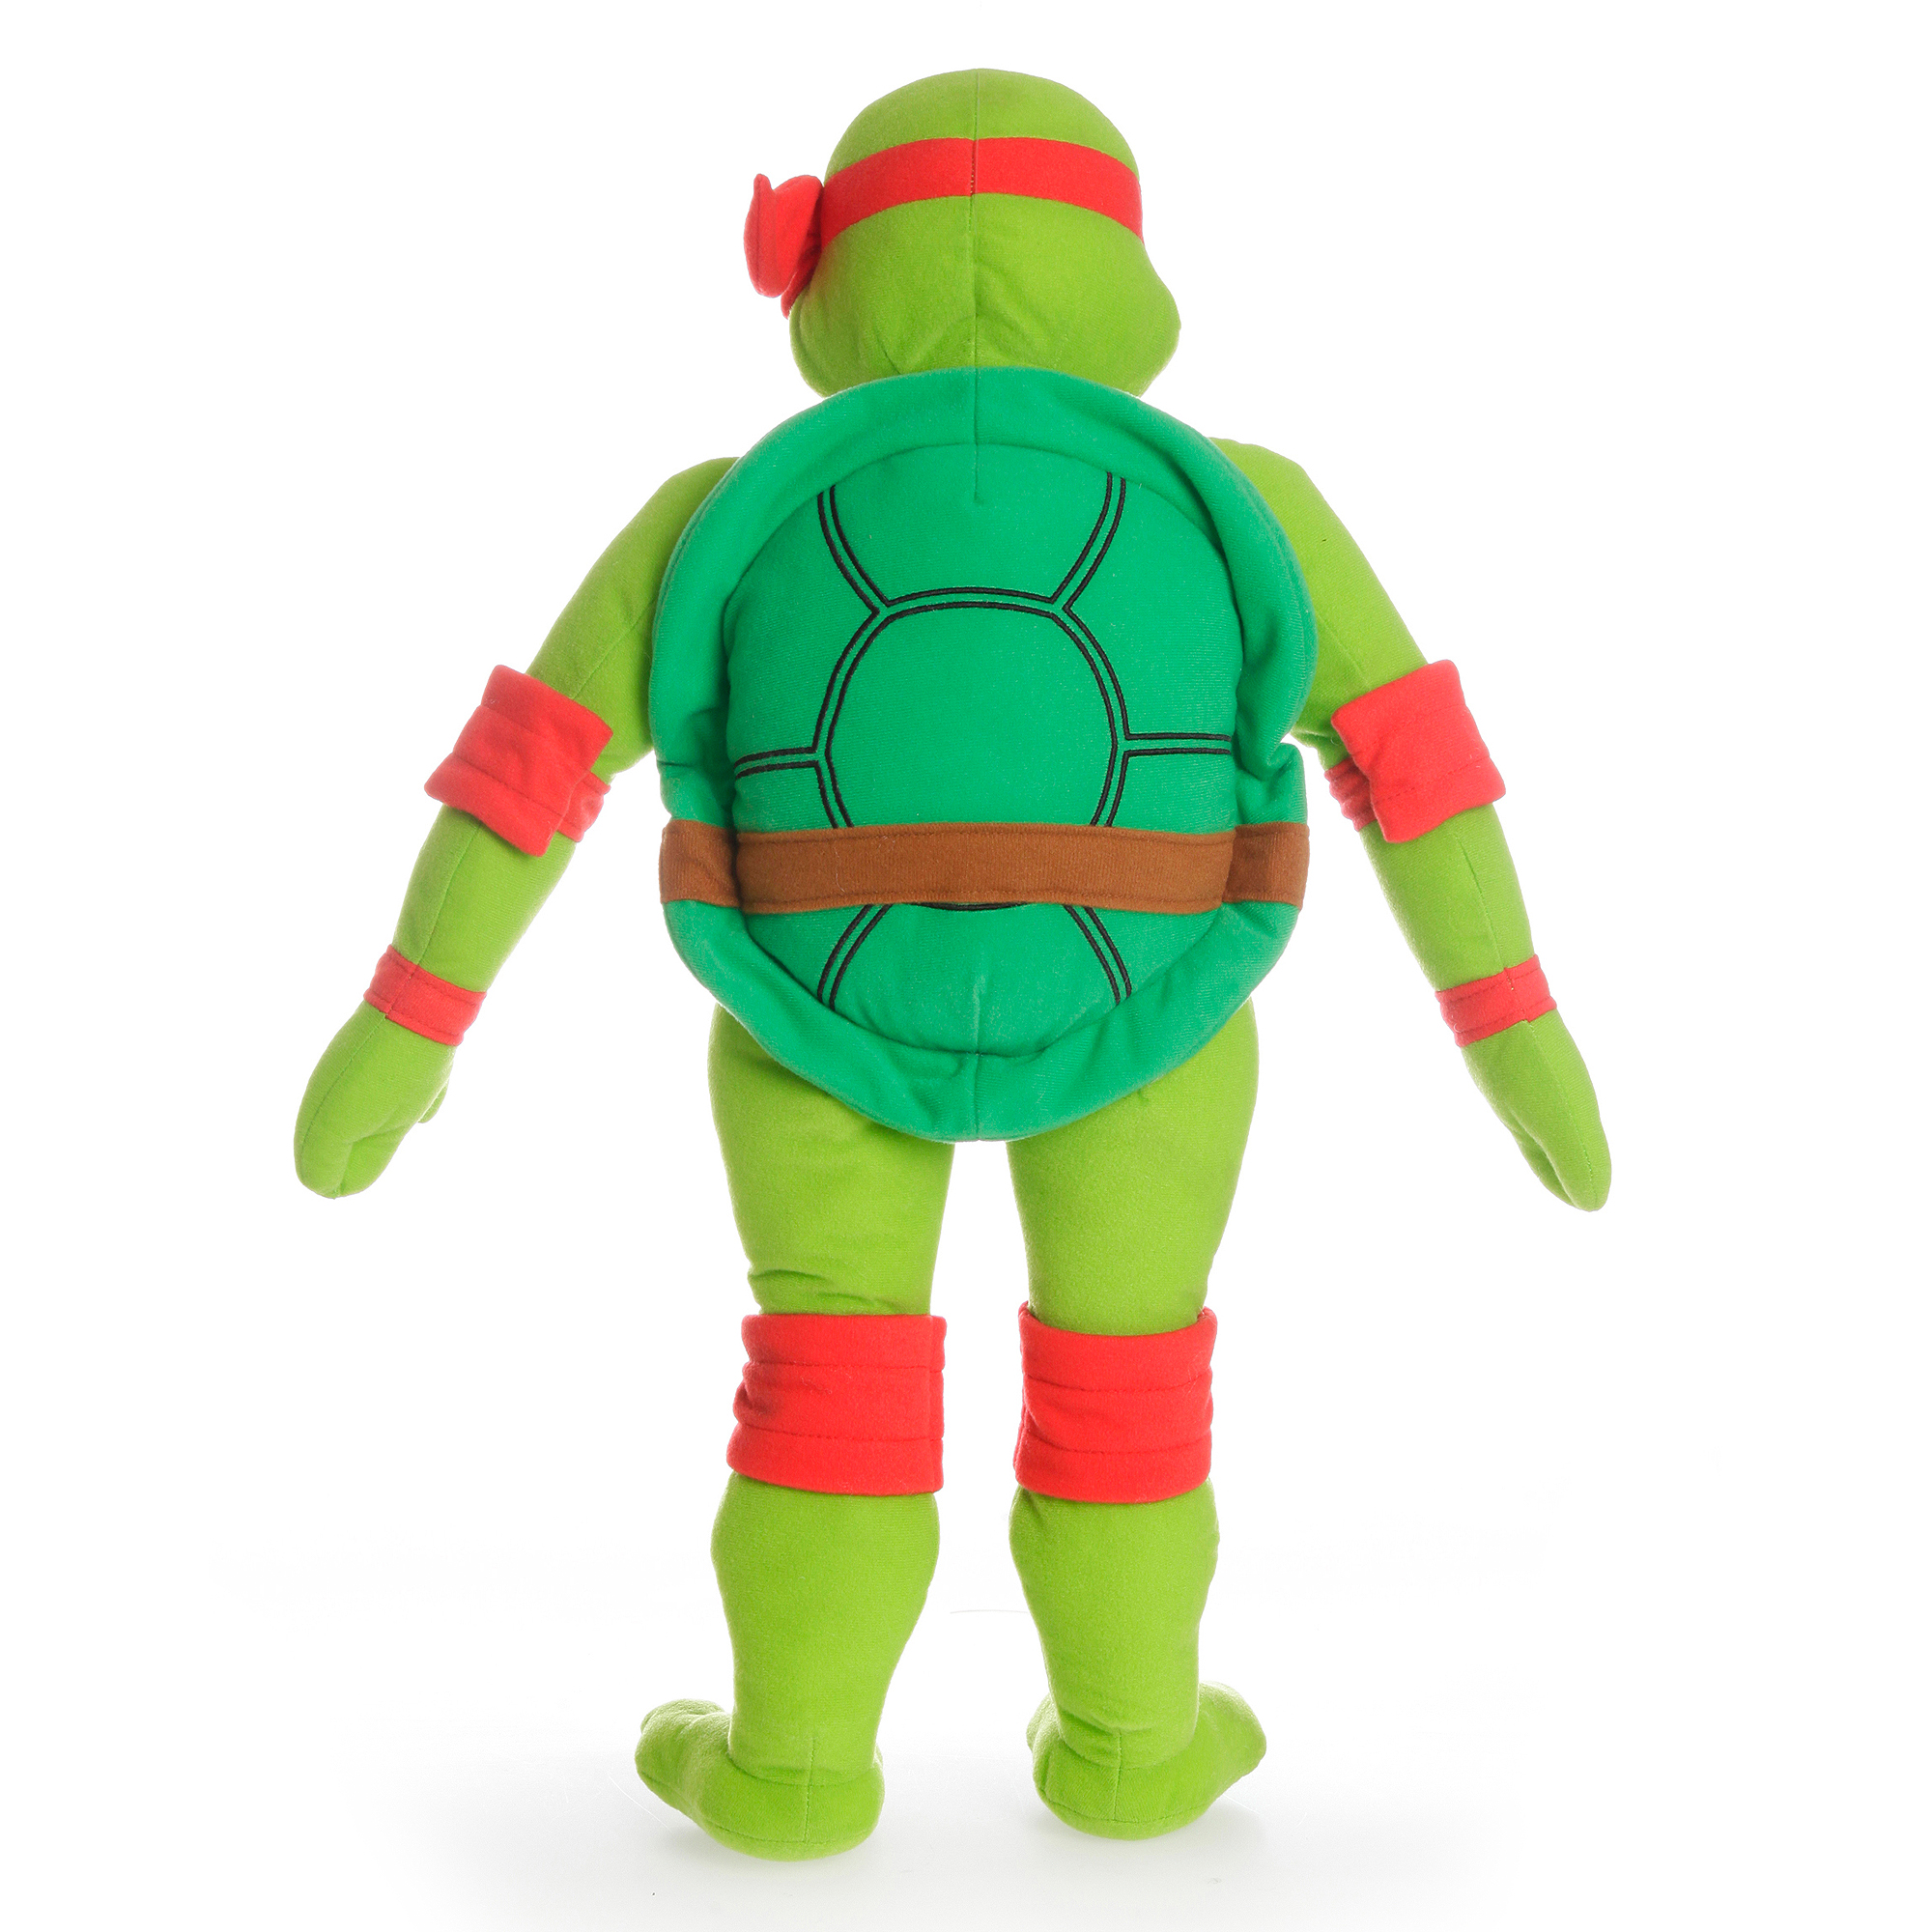 Nickelodeon Teenage Mutant Ninja Turtle Raphael Plush